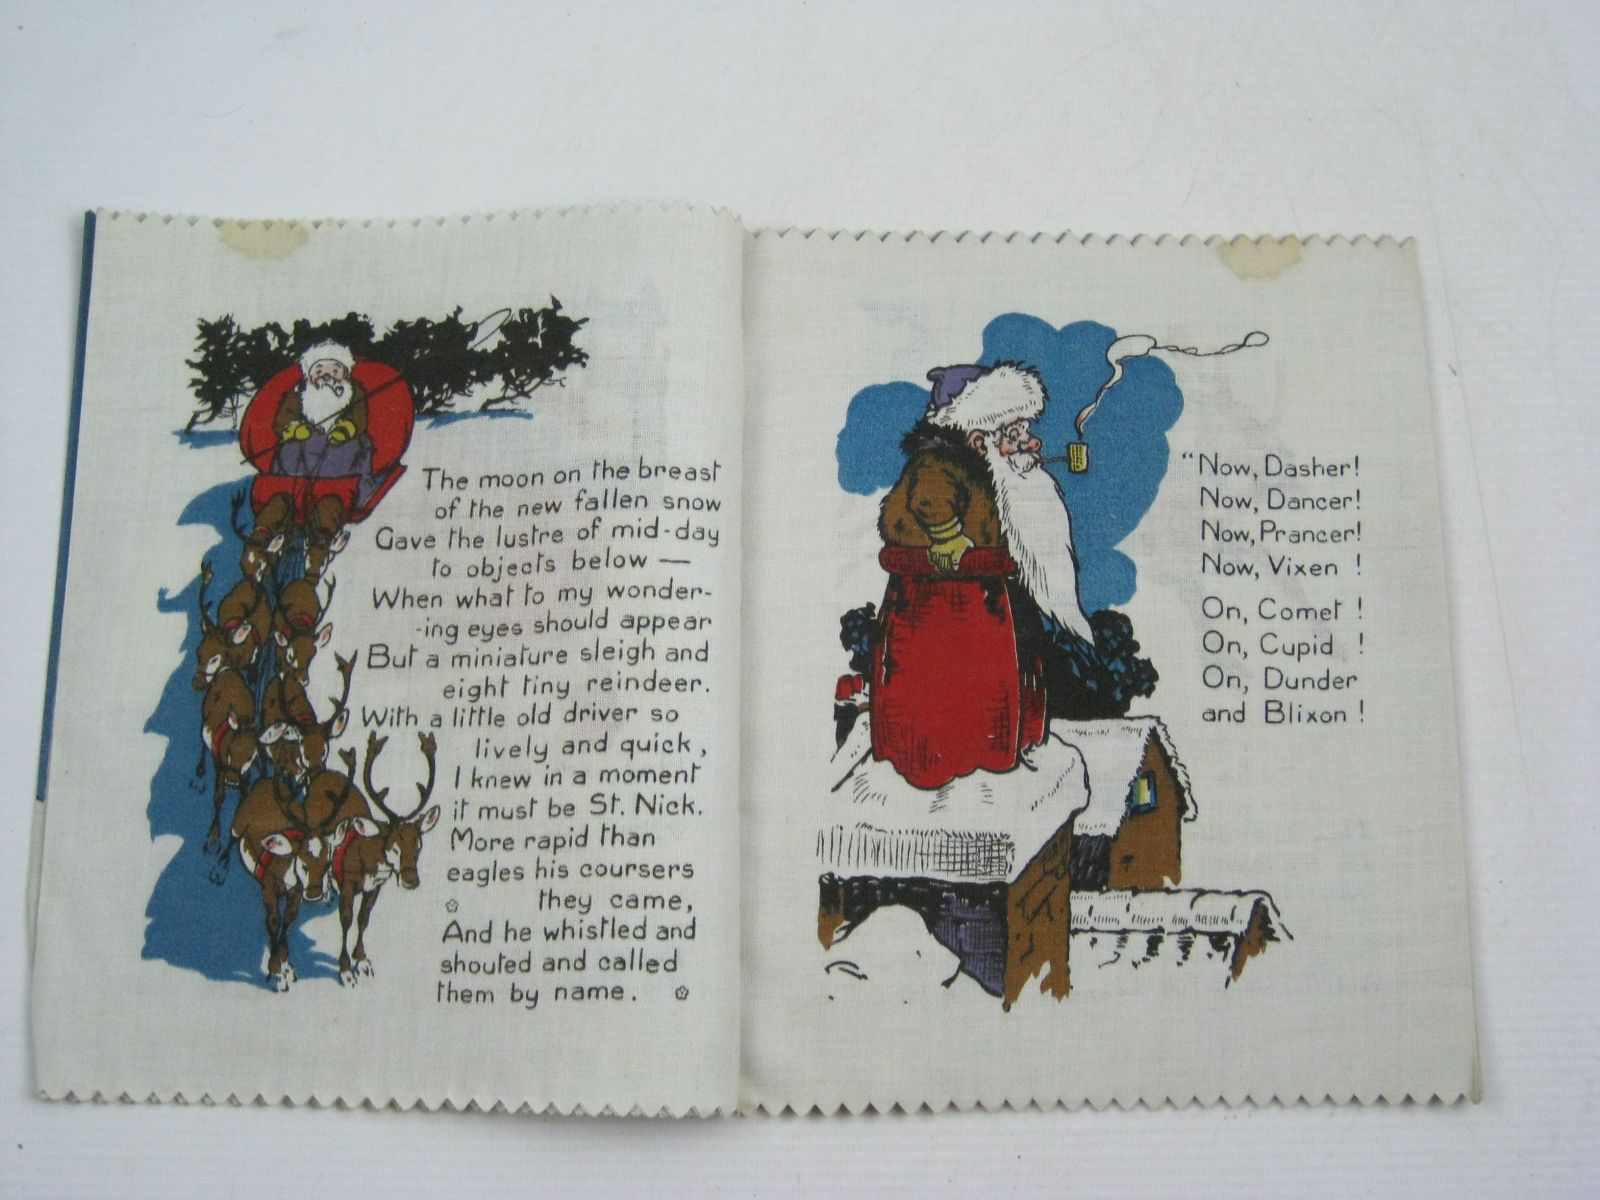 photo of santa claus written by moore clement clarke illustrated by rountree harry published - Books About Santa Claus 2